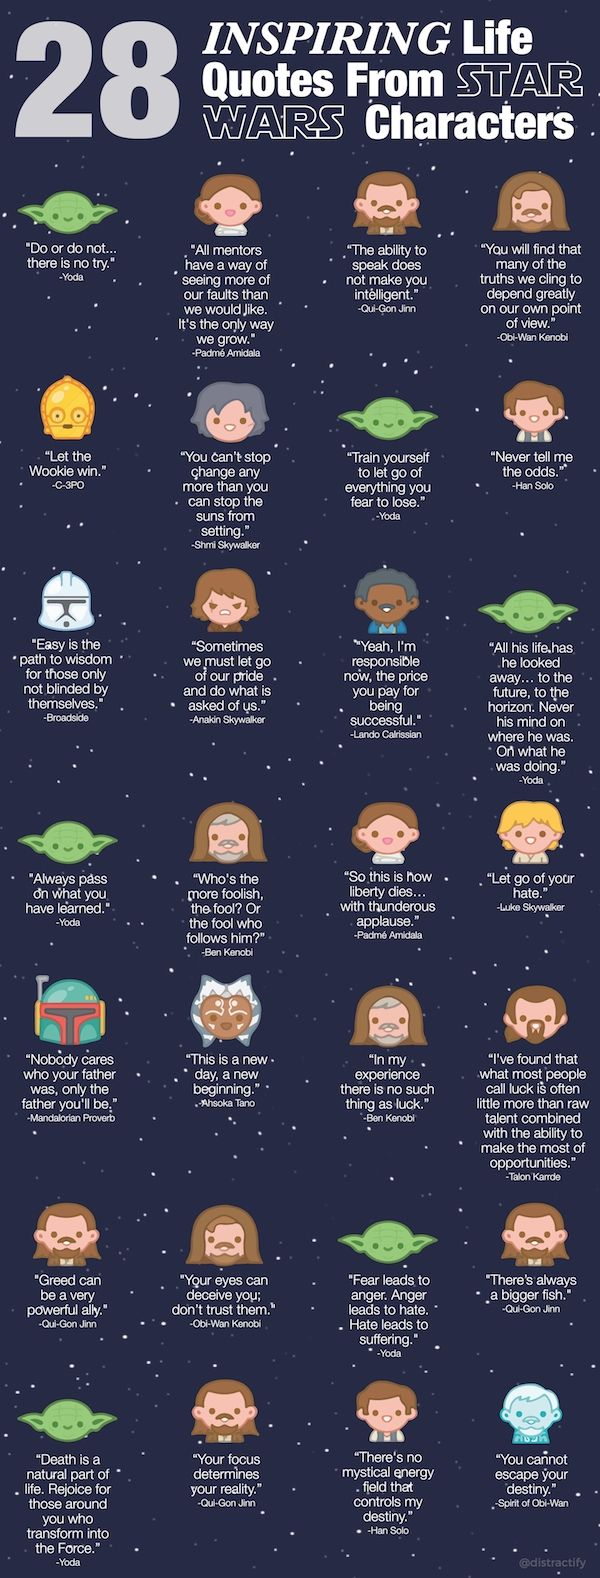 Star Wars Love Quotes Infographic 28 Deeply Inspiring Life Quotes From The 'star Wars